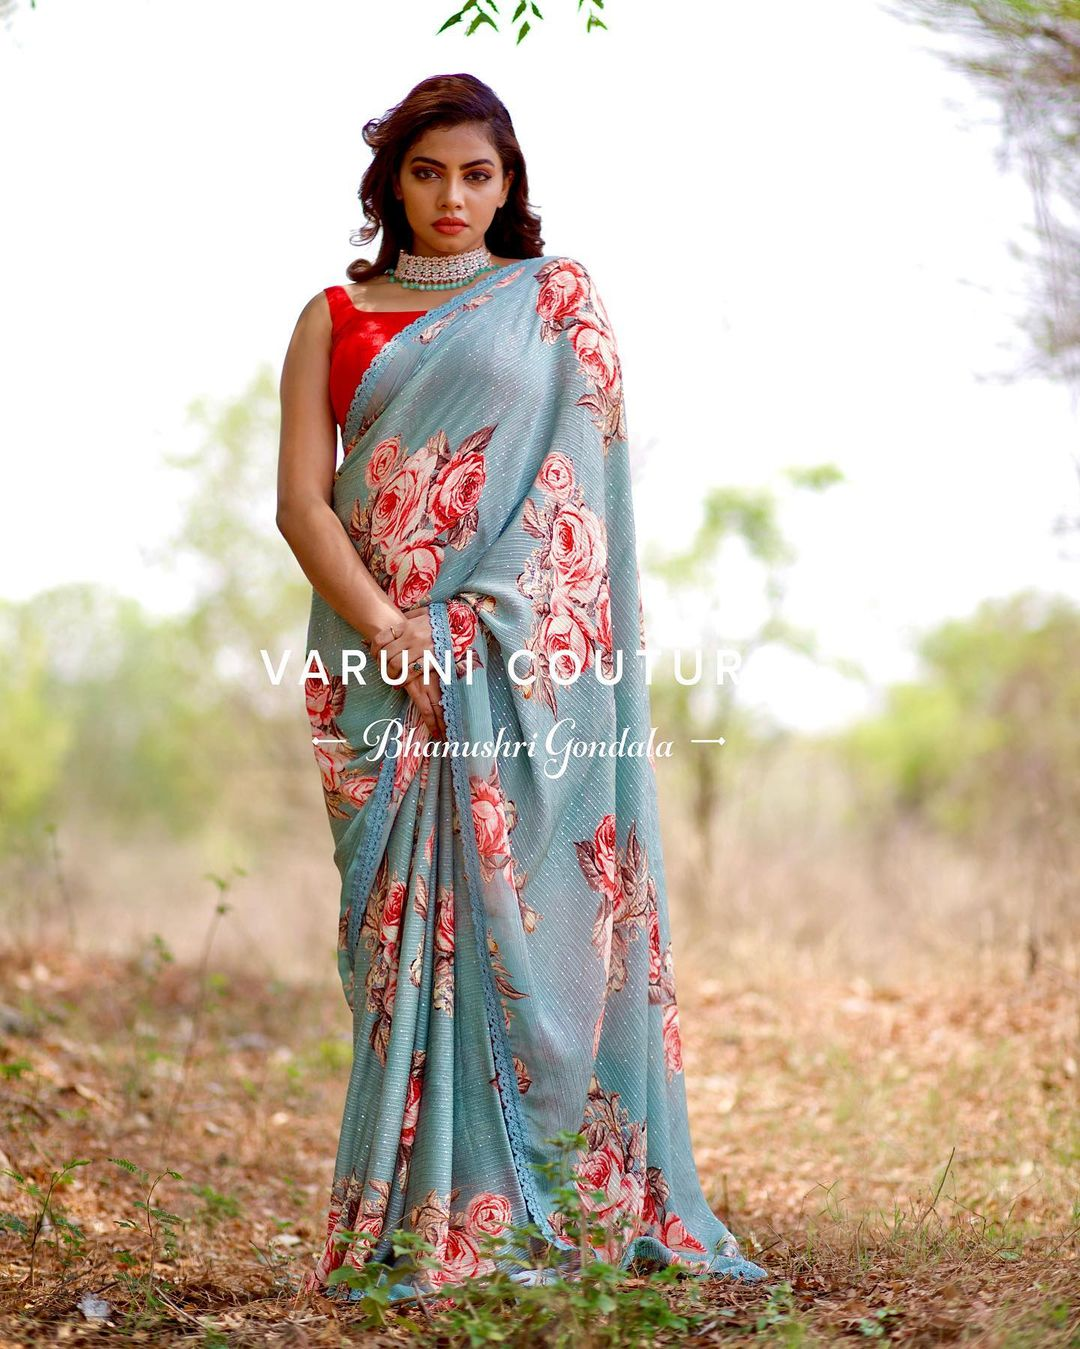 Stunning ice blue color floral saree and red color sleeveless blouse. Price 6999 INR